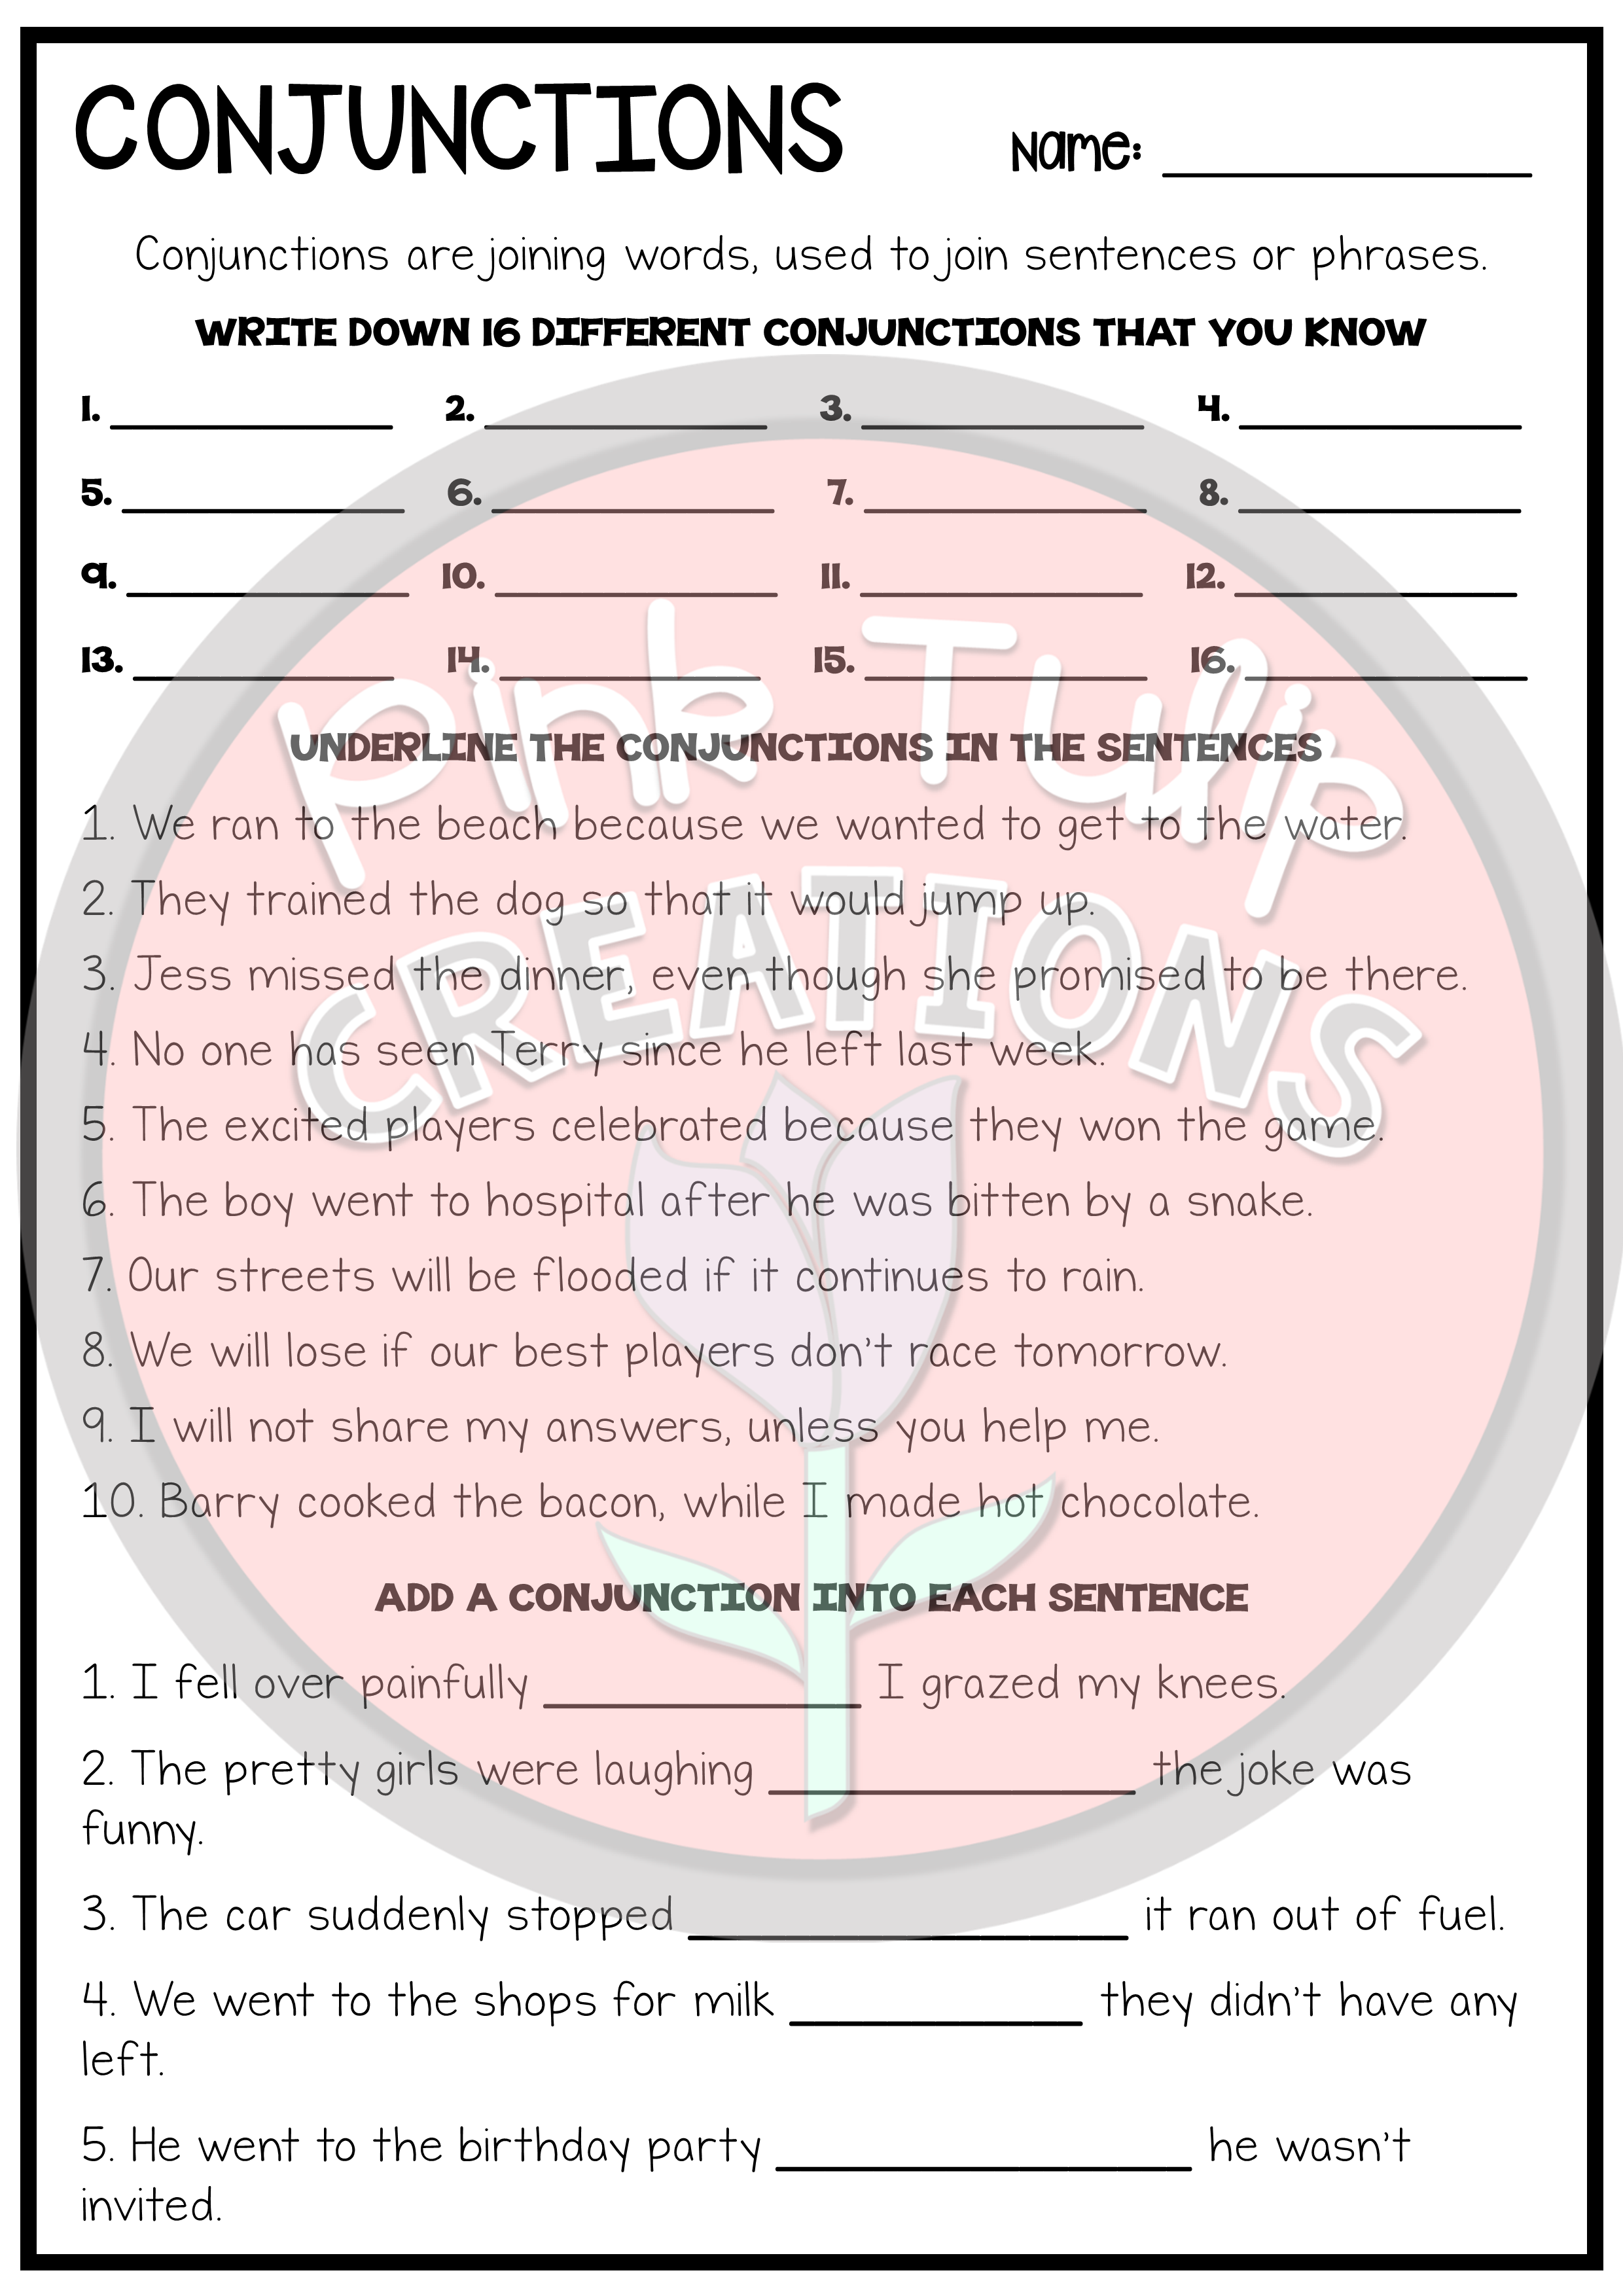 Two Grammar Worksheets To Help Students Learn & Practice